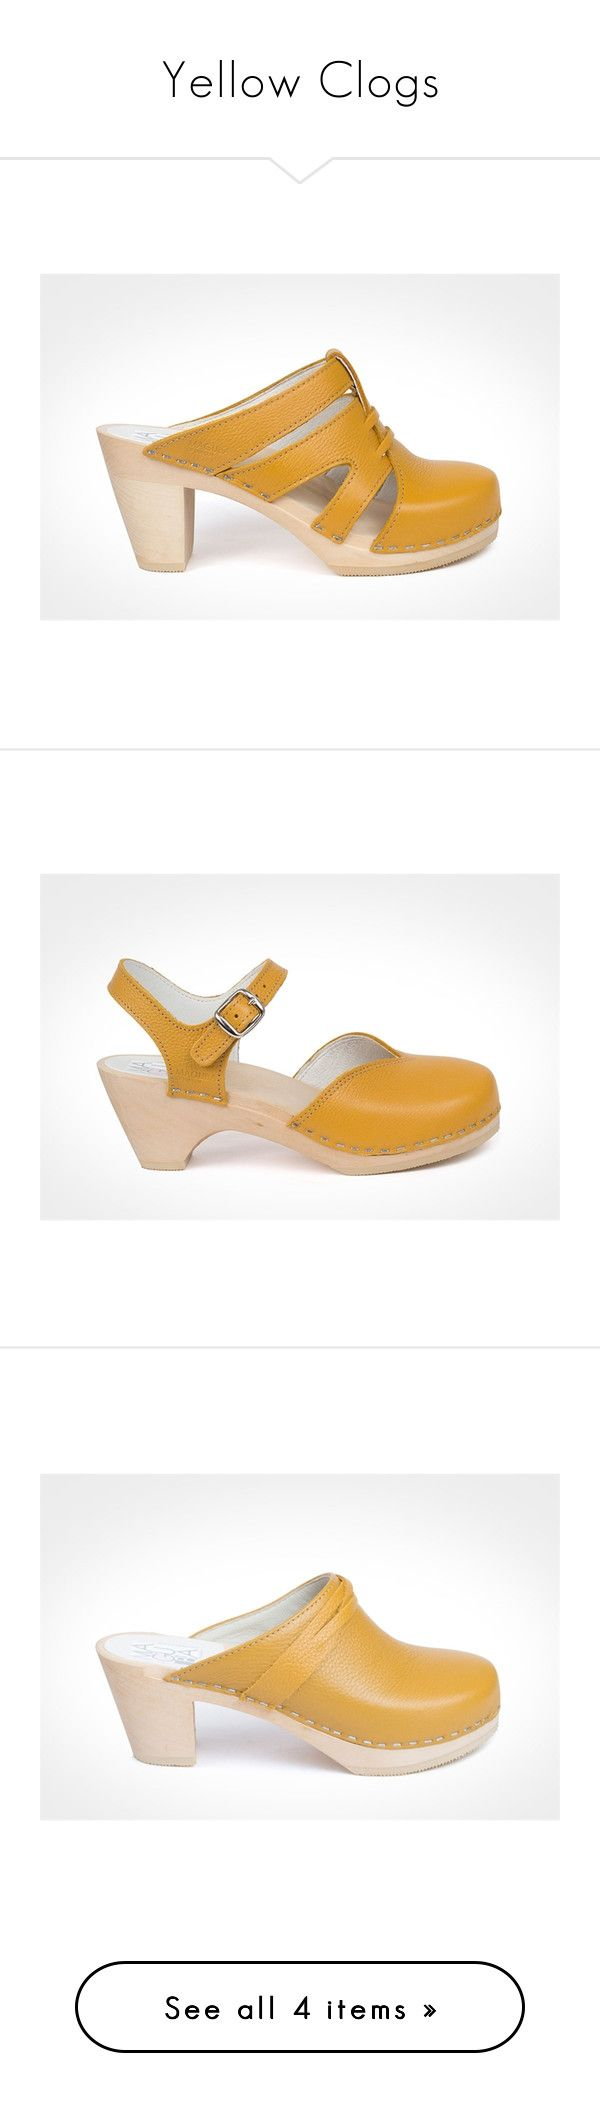 """Yellow Clogs"" by maguba ❤ liked on Polyvore featuring shoes, clogs, leather clog shoes, maguba, leather footwear, clogs footwear, yellow shoes, ankle strap clogs, clog shoes and genuine leather shoes"